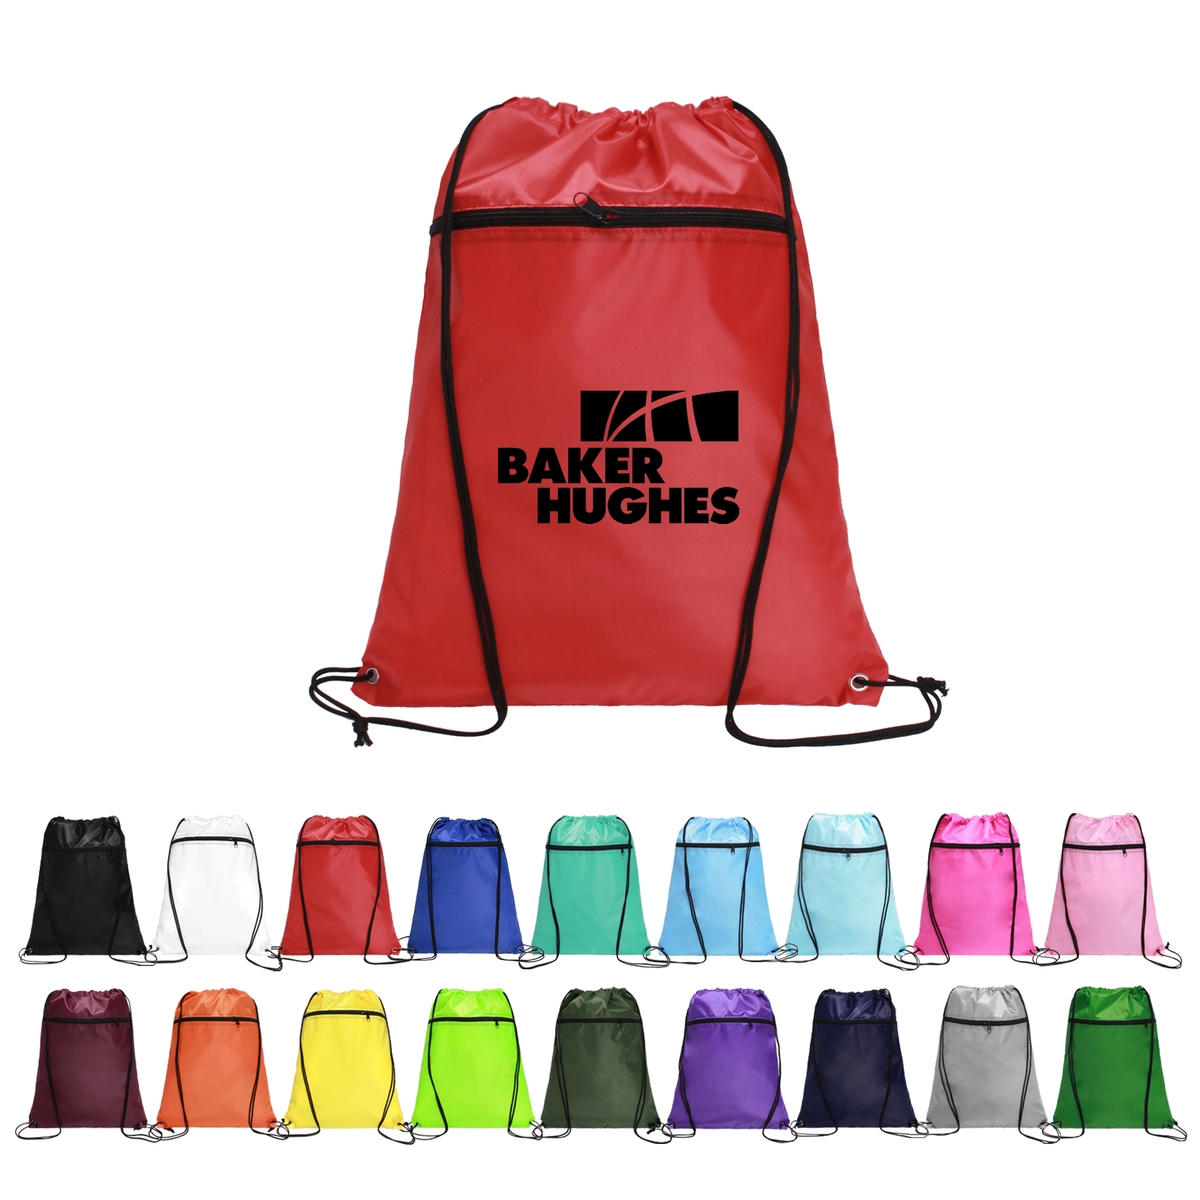 Drawstring Backpacks With Front Pocket